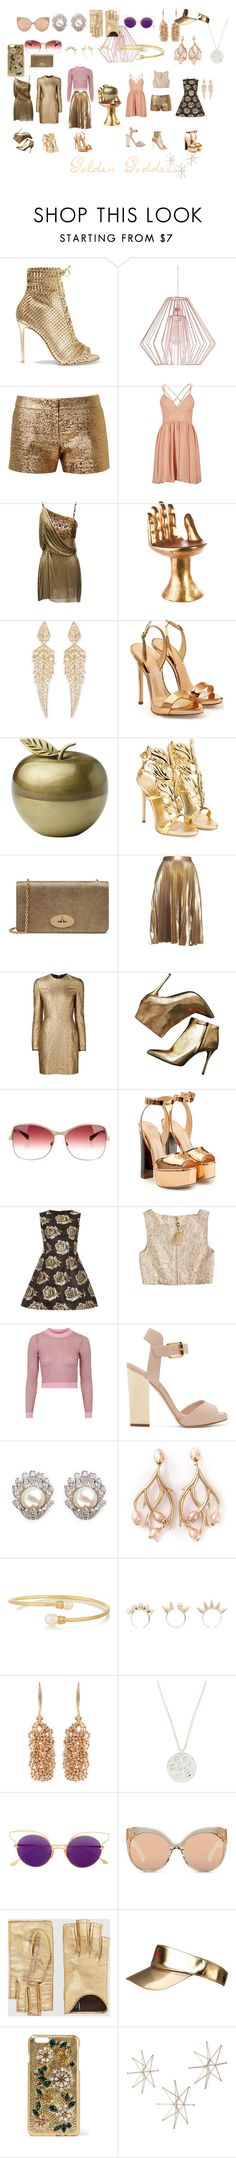 """Golden Goddess"" by zenobiaourania ❤ liked on Polyvore featuring Gianvito Rossi, Crystal Art, Lanvin, Versace, Pols Potten, Stephen Webster, Giuseppe Zanotti, Kate Spade, Mulberry and A.L.C."